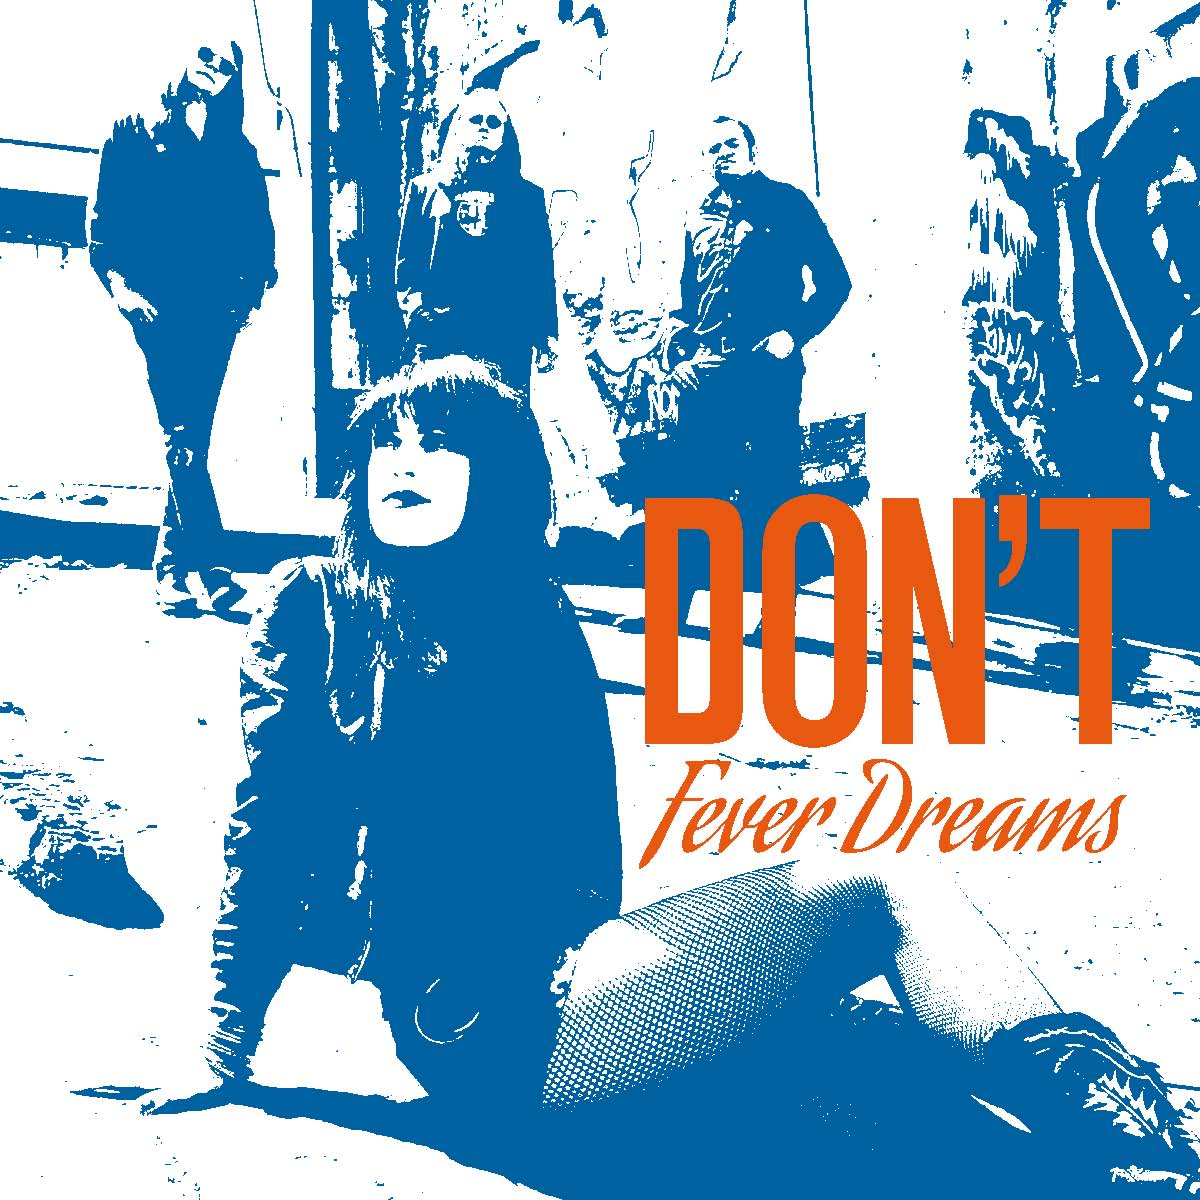 Don't – Fever dreams